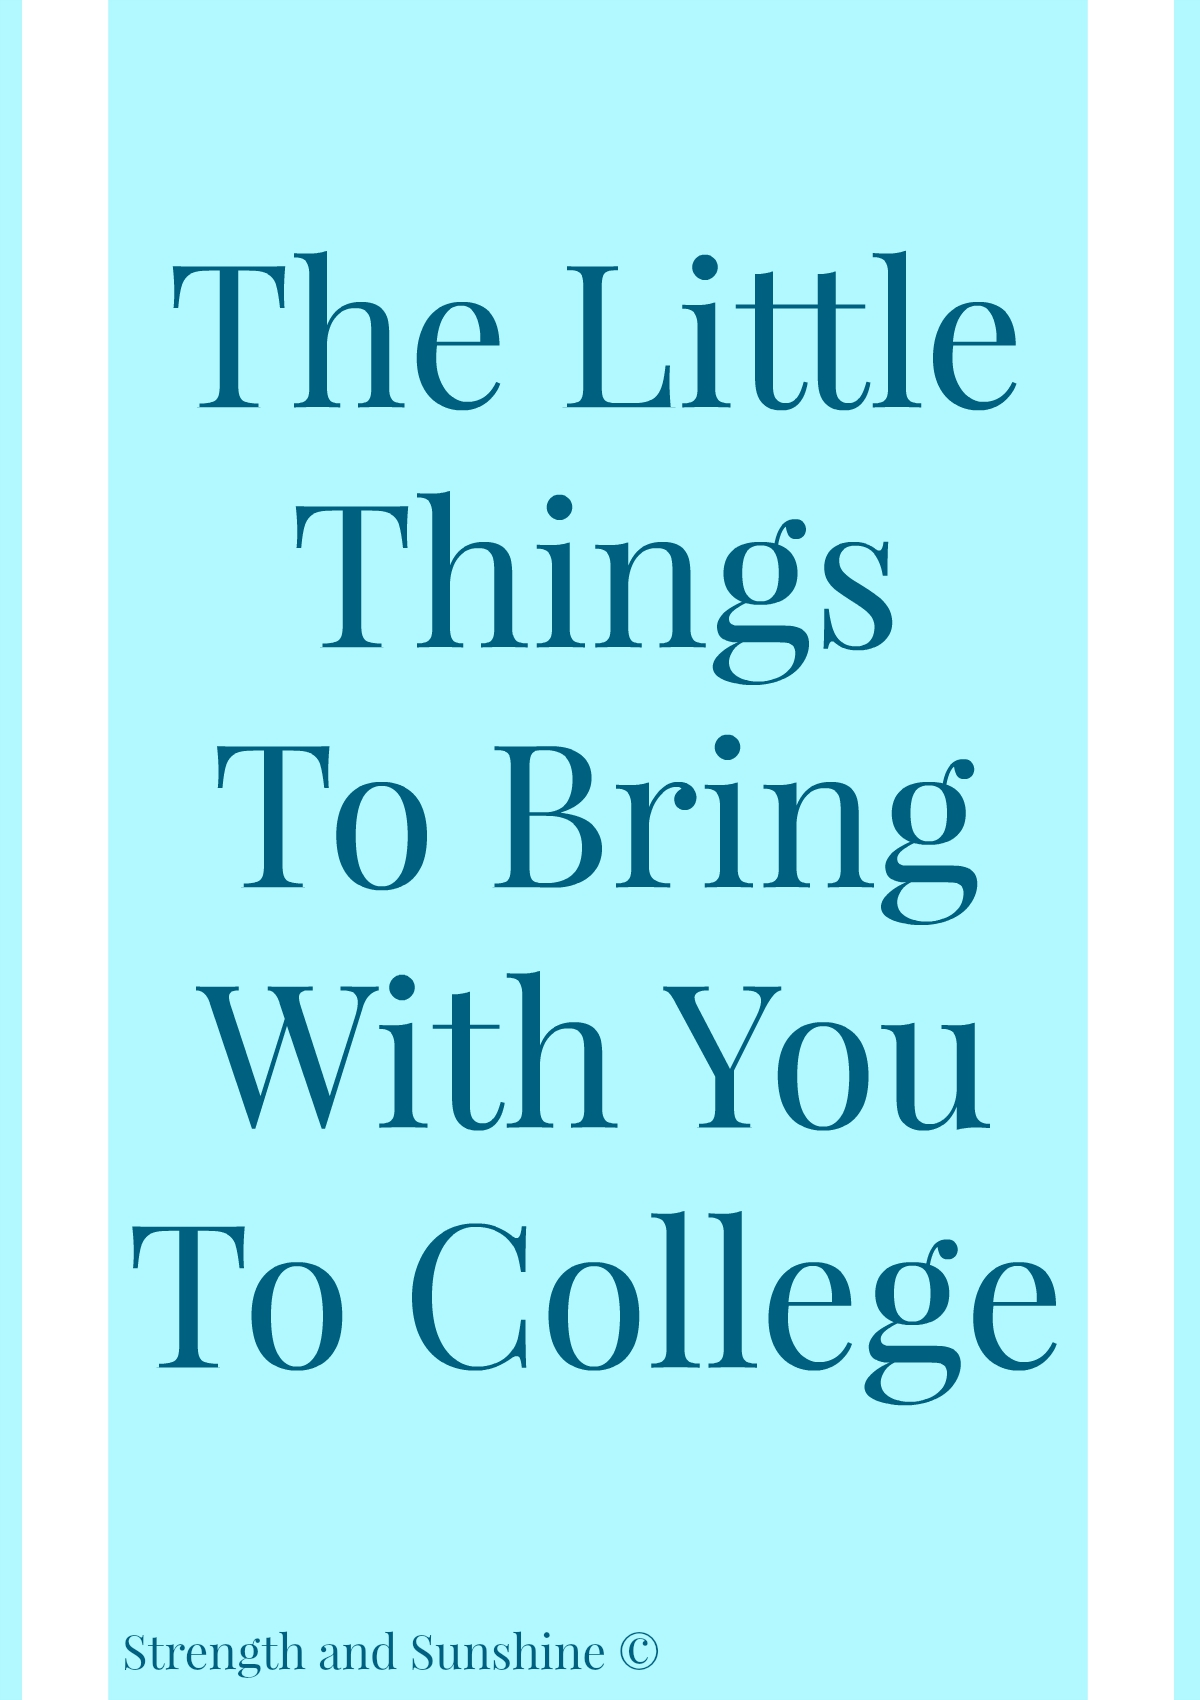 The Little Things To Bring With You To College | Strength and Sunshine @RebeccaGF666